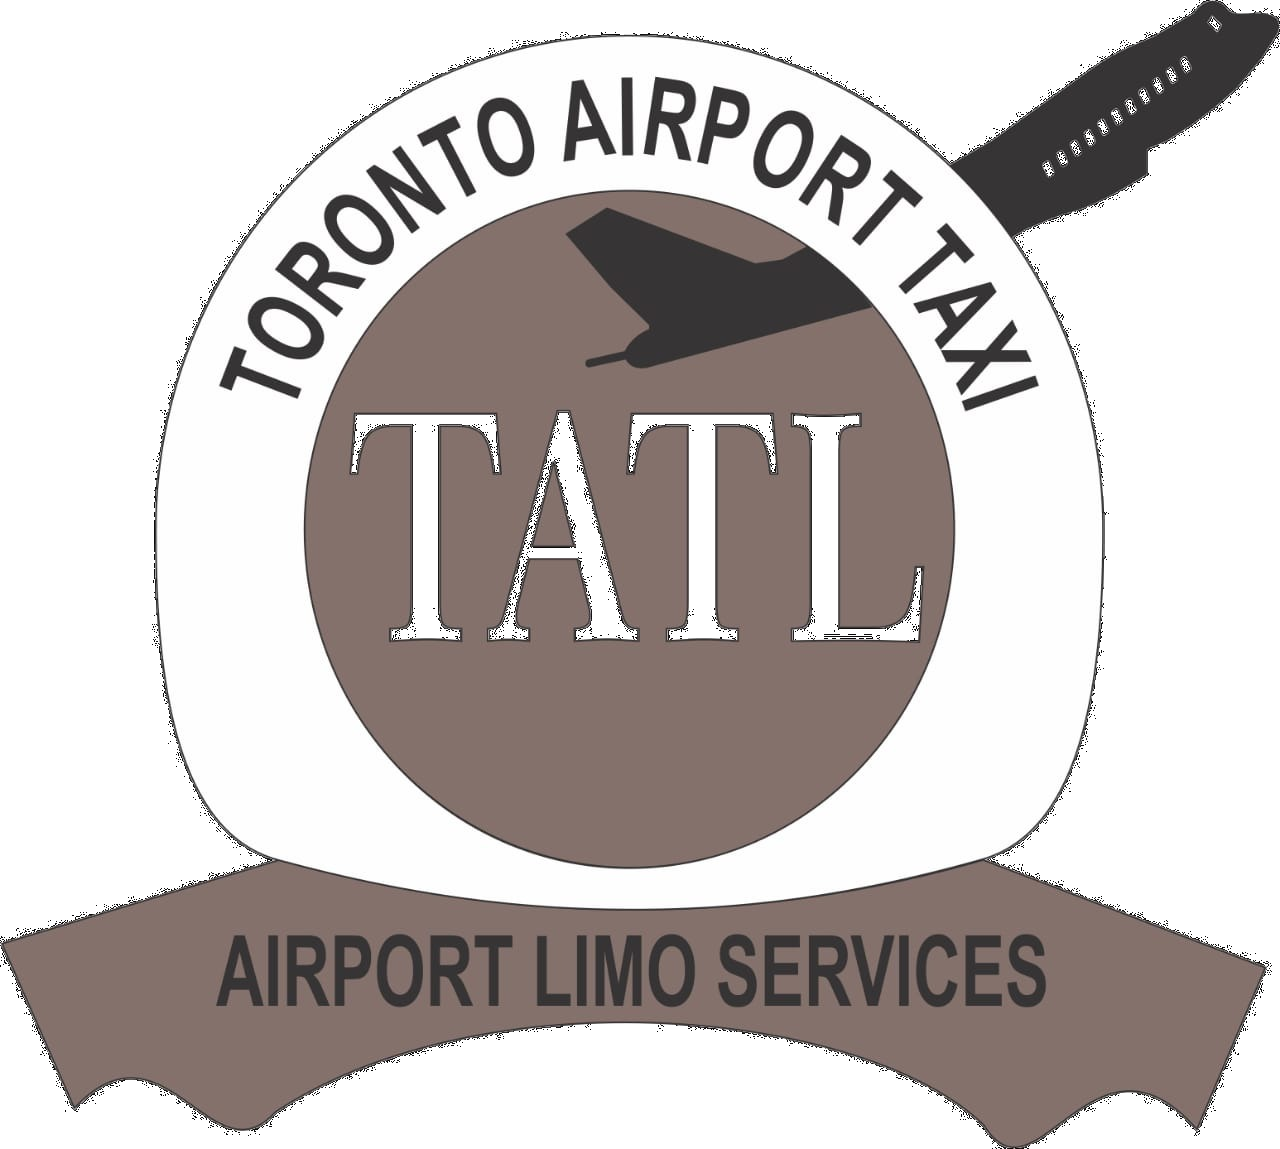 Toronto Airport Taxi - Airport Limo Service